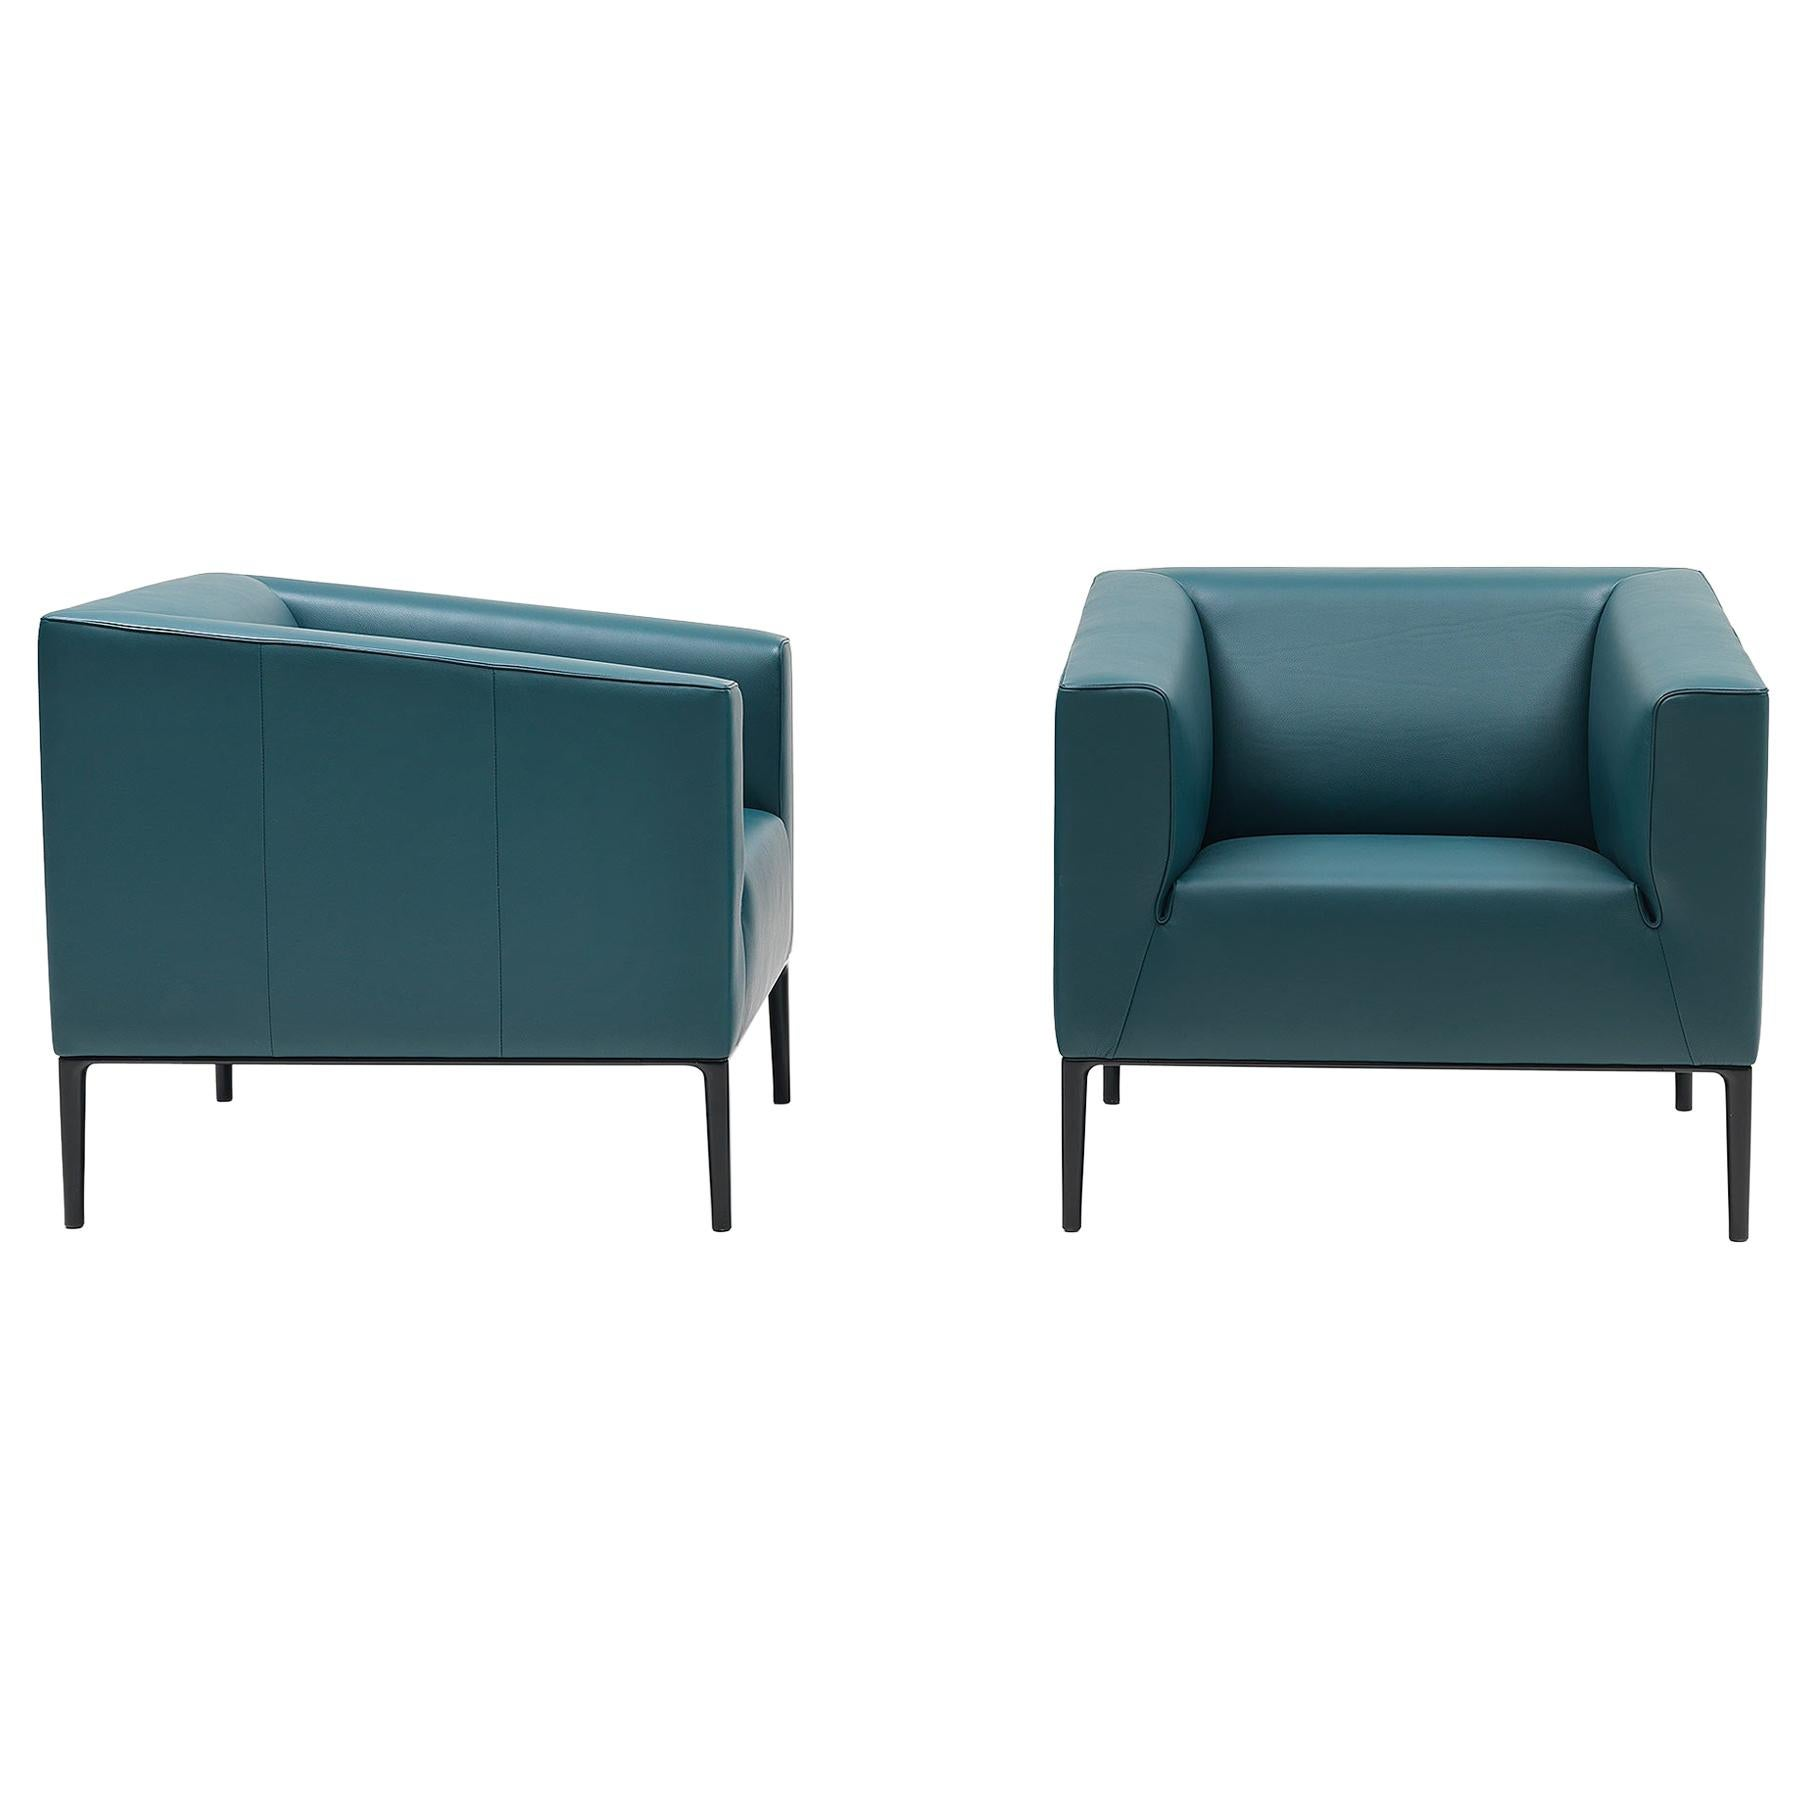 De Sede DS-161/01 Armchair in Petrol Blue Upholstery by De Sede Design Team